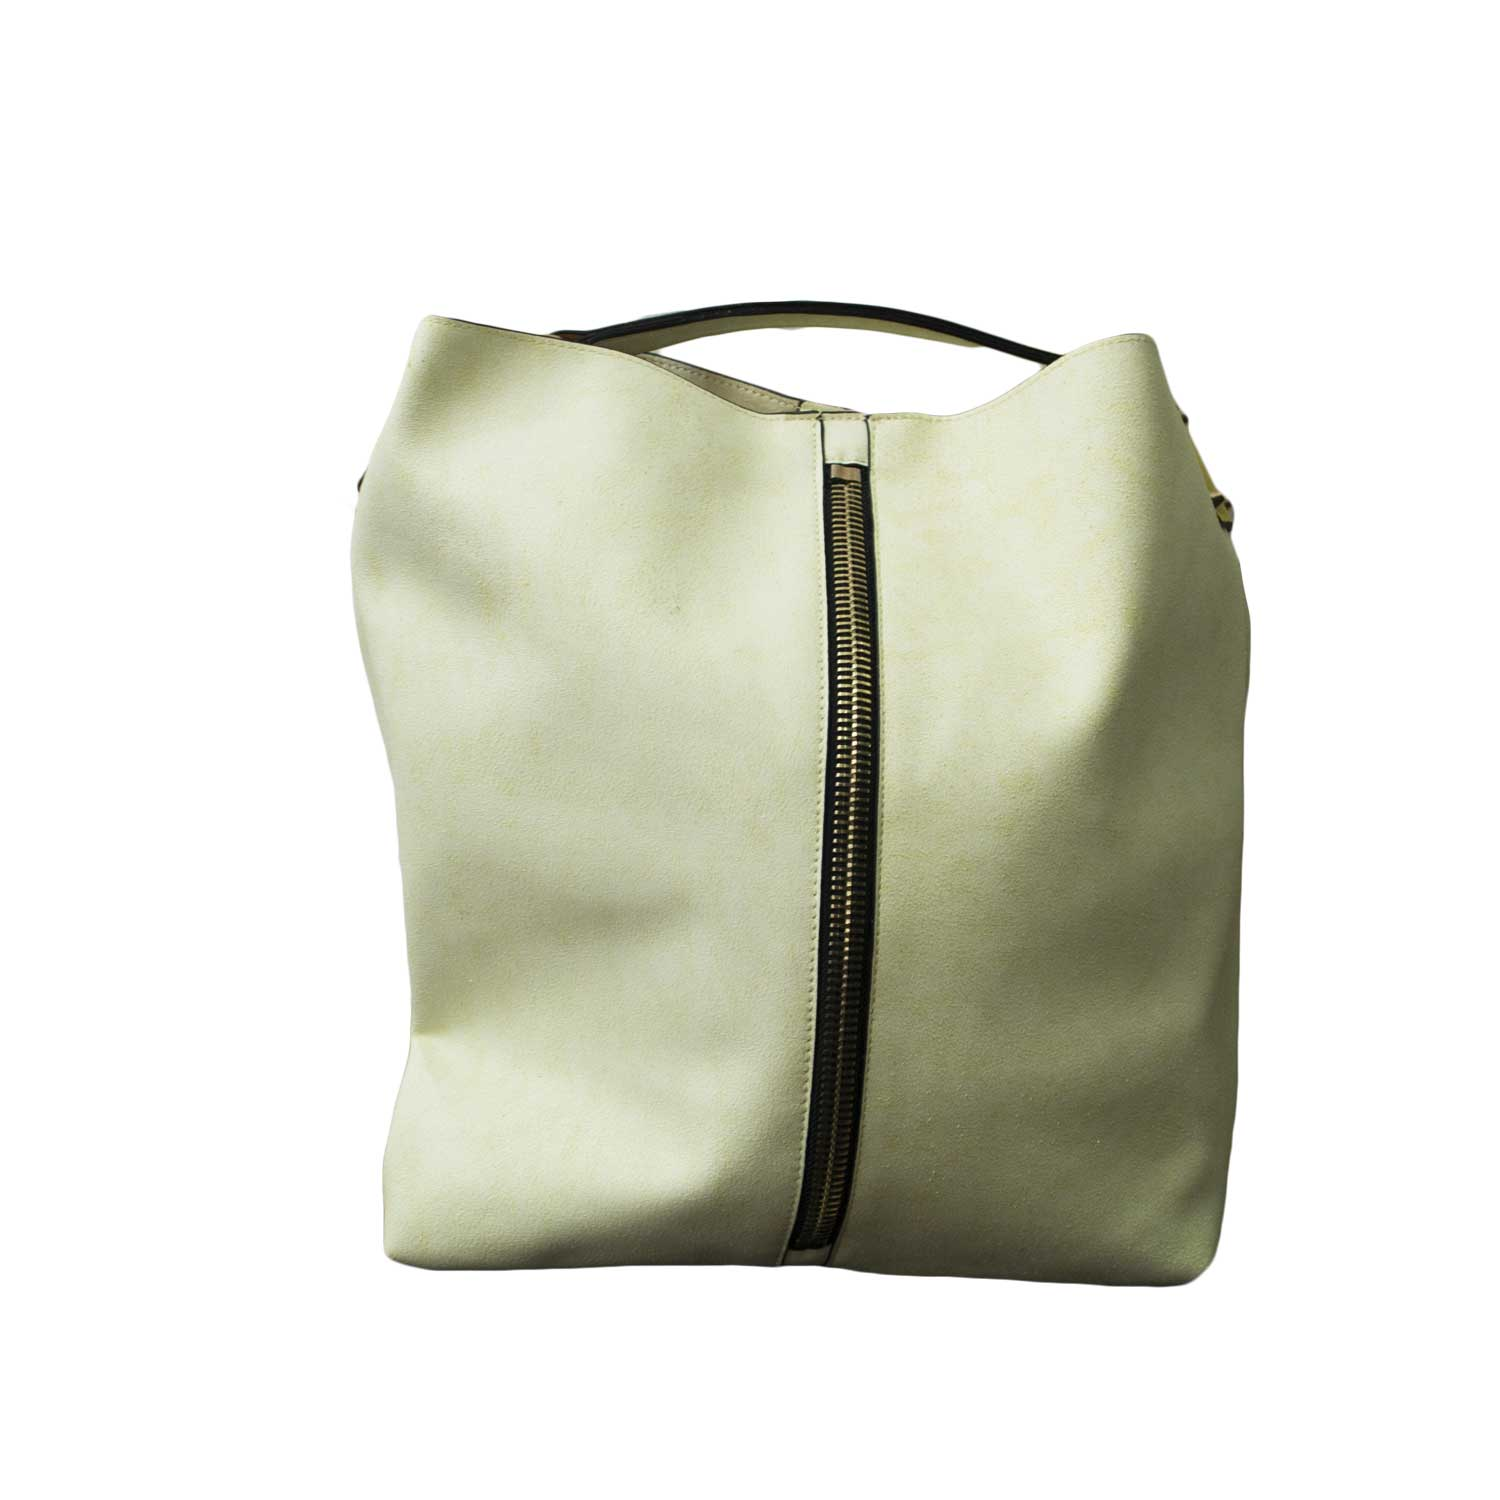 Borsa Shopping Big Bags manico tracolla zip giallo.